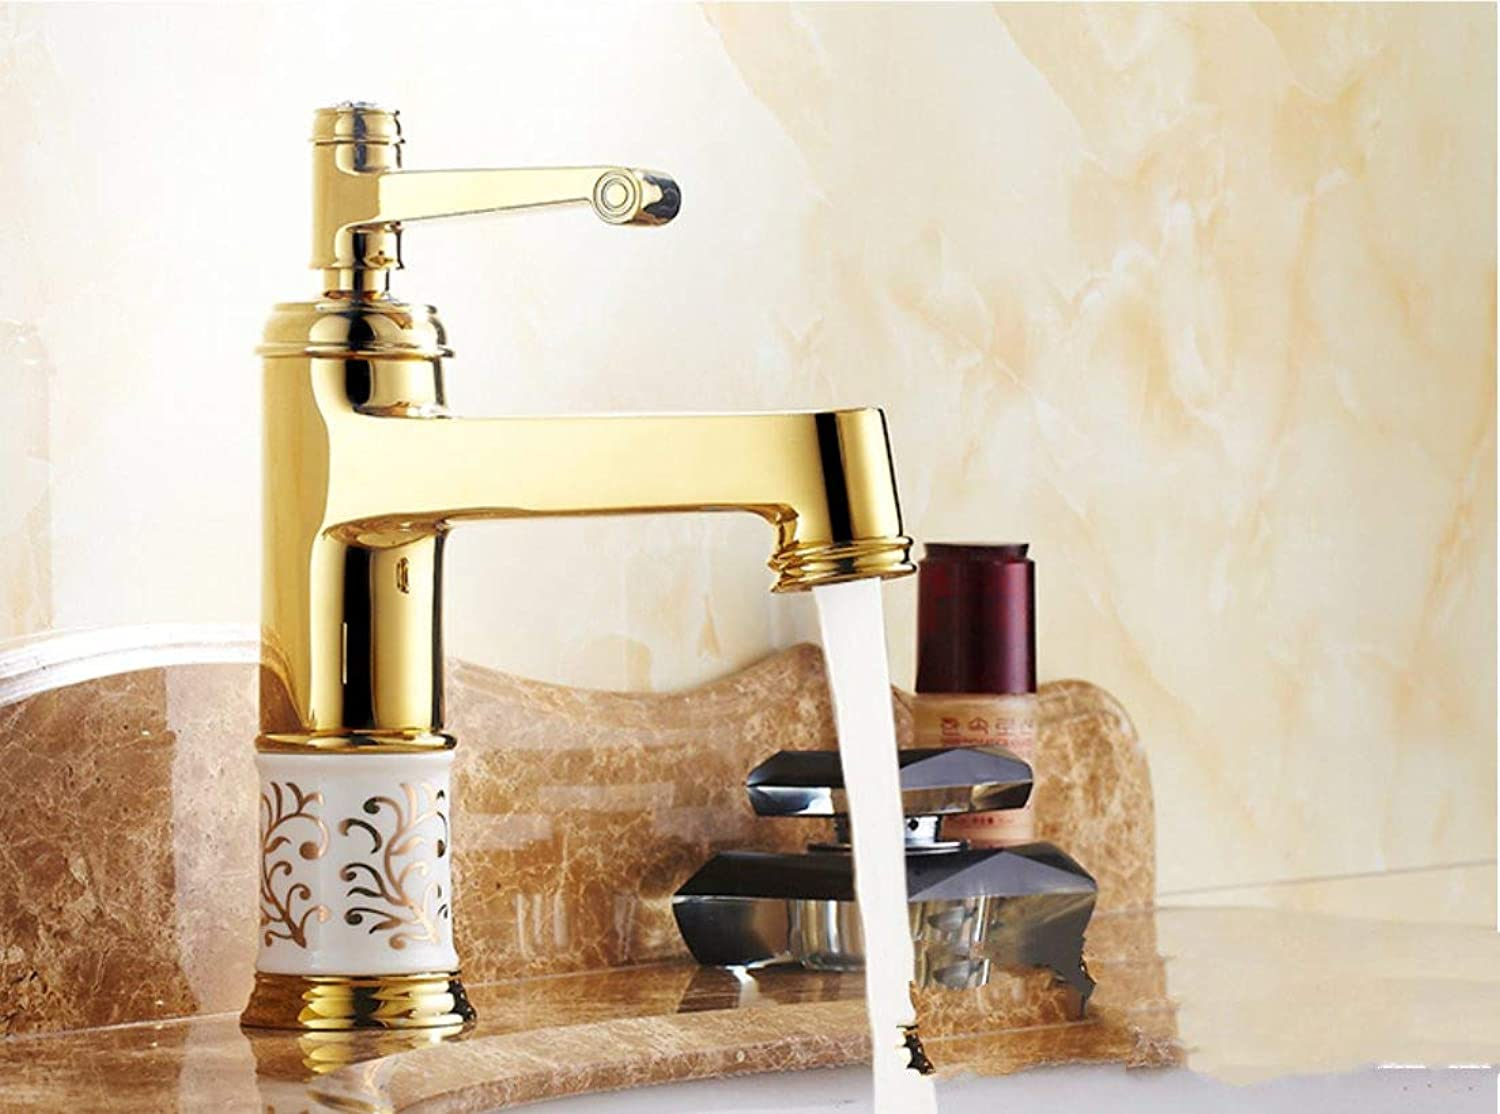 redOOY Bathroom Sink Taps European Copper Basin Faucet bluee And White Porcelain gold Antique Faucet?Hot And Cold Water Faucet?European bluee And White Porcelain Faucet gold